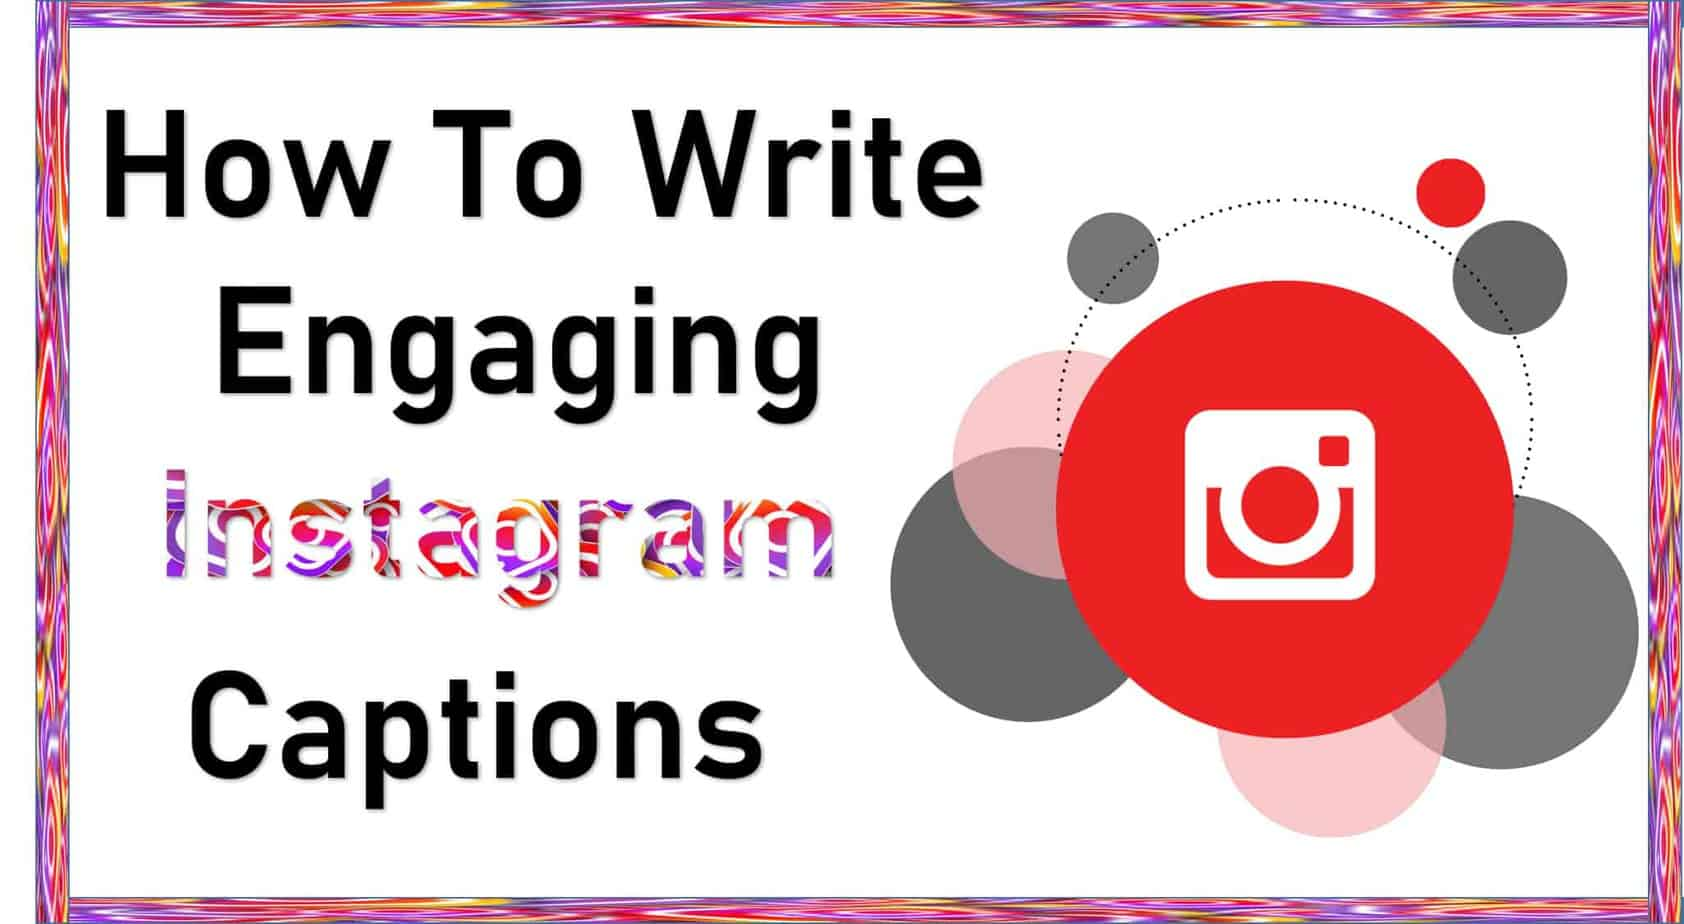 write engaging instagram captions